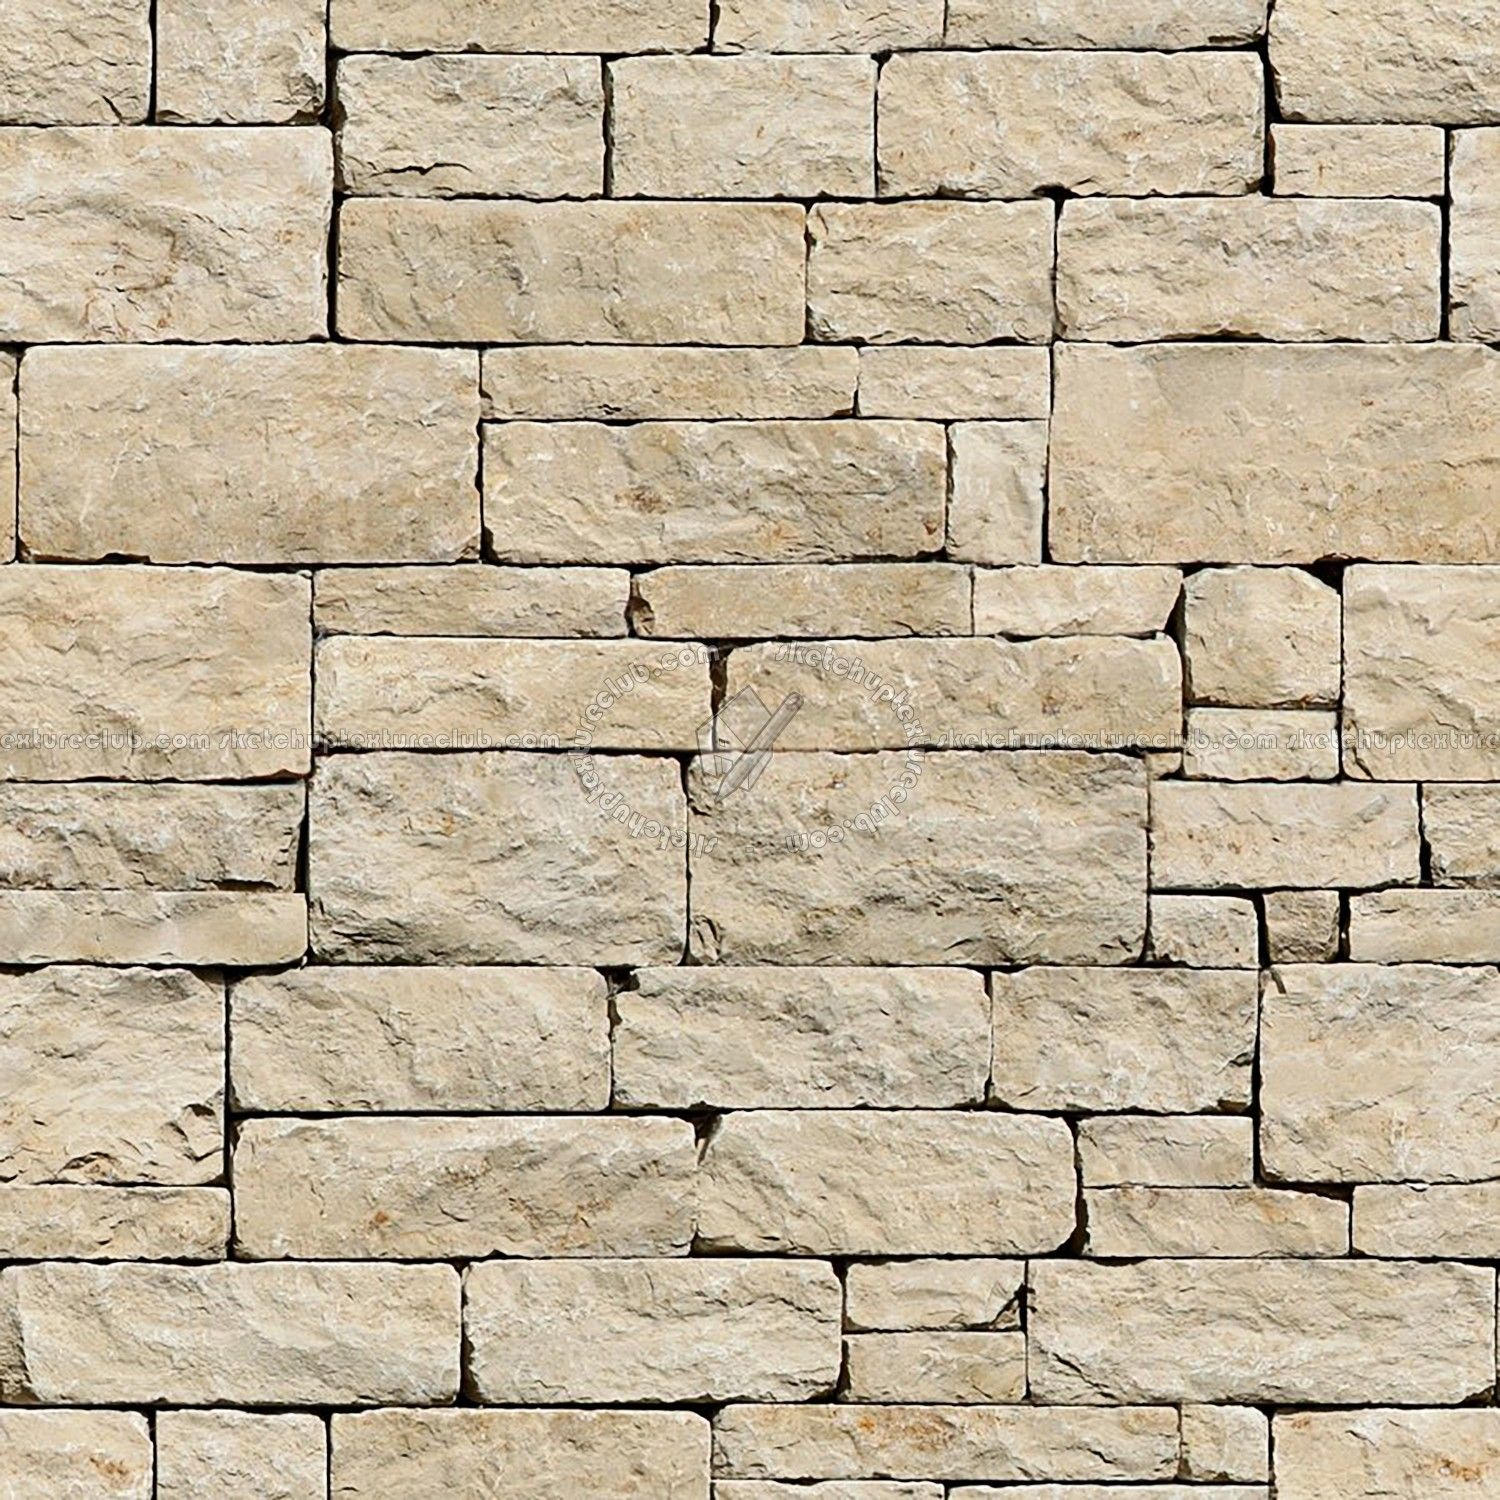 Wall Stone With Regular Blocks Texture Seamless 08328